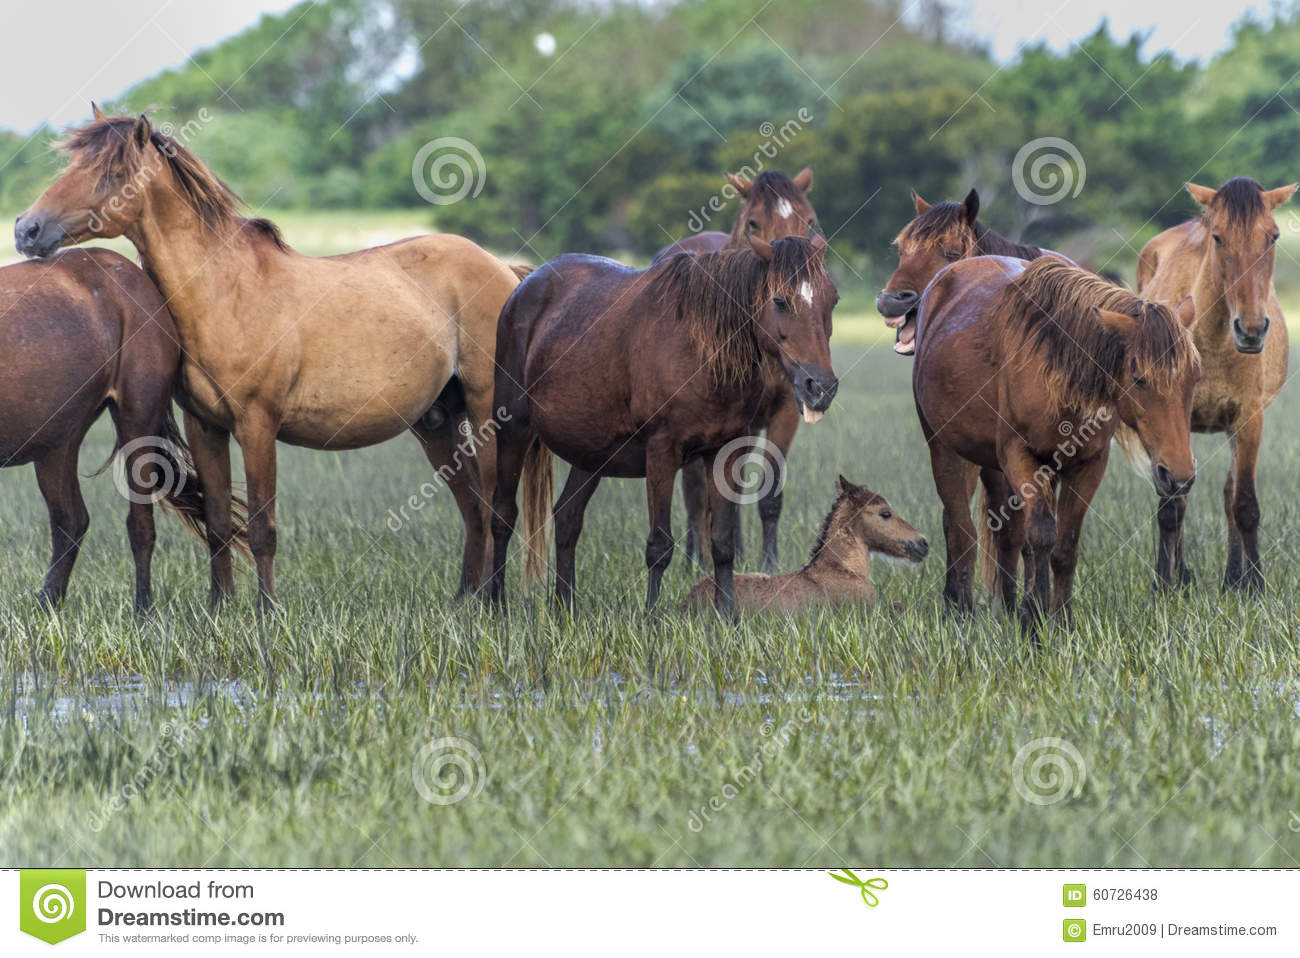 Wild horses in outerbanks of North Carolina